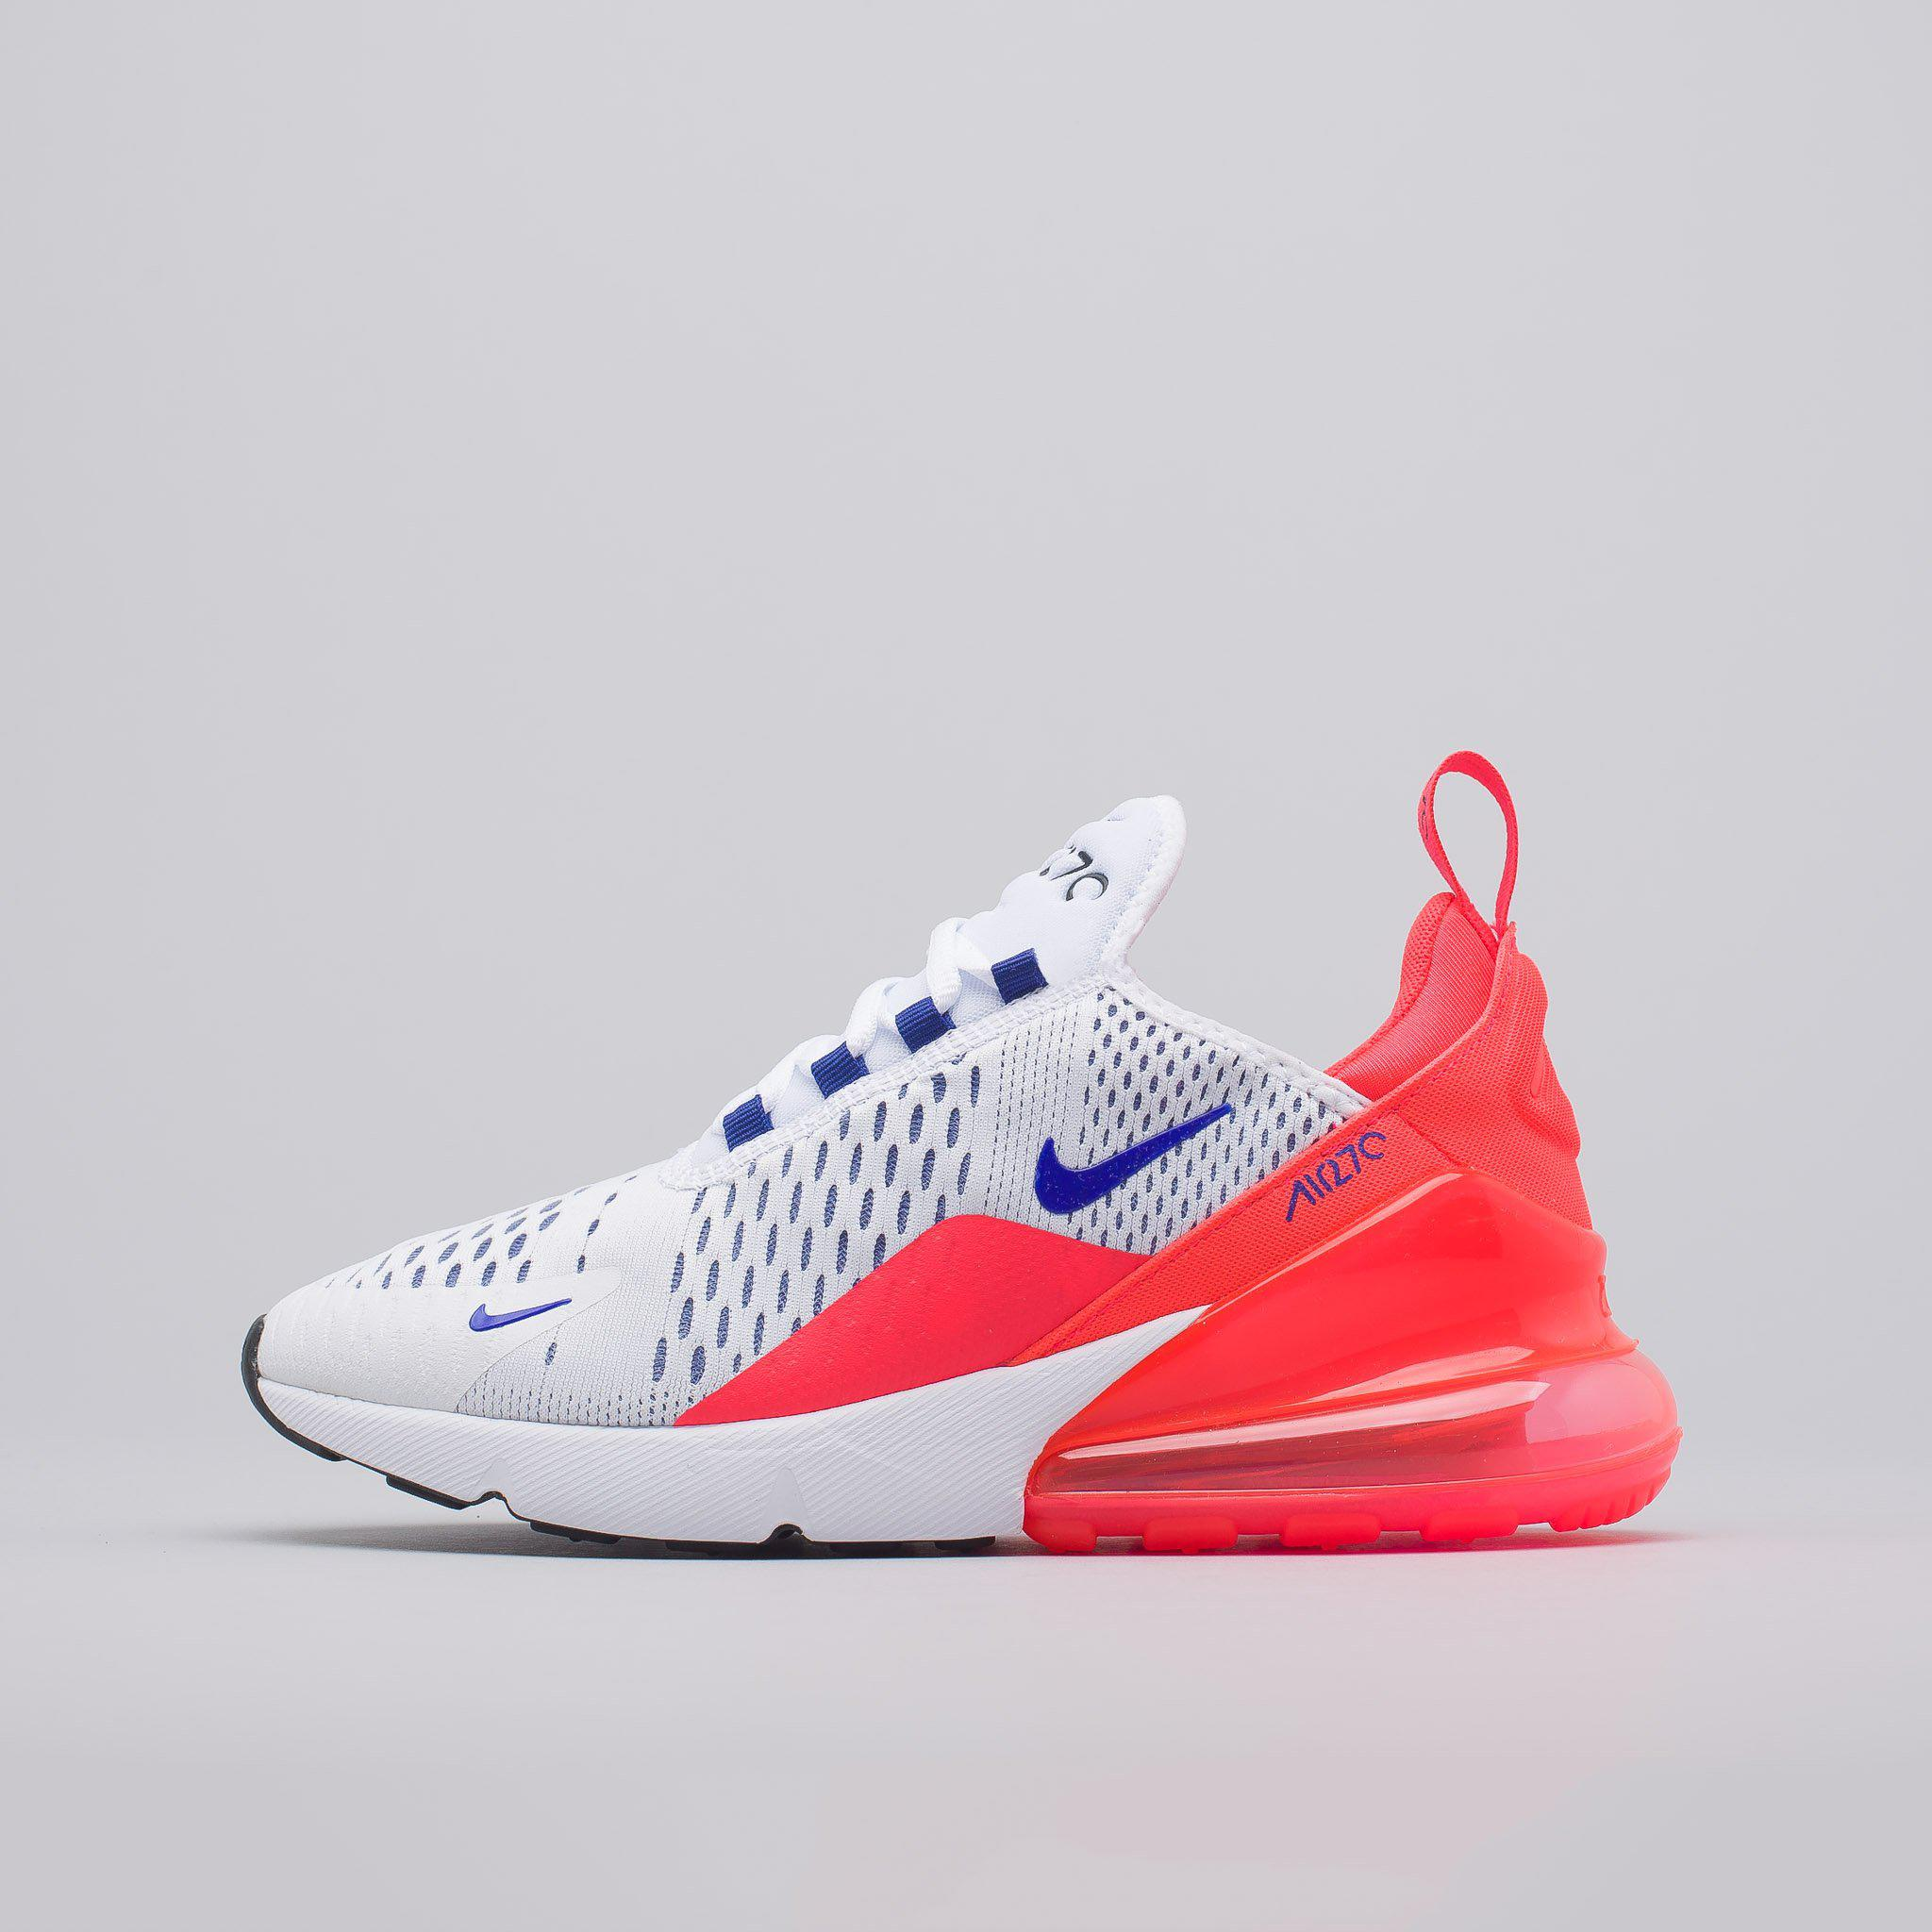 Lyst - Nike Women s Air Max 270 In White ultramarine in White for Men c354452d15f1